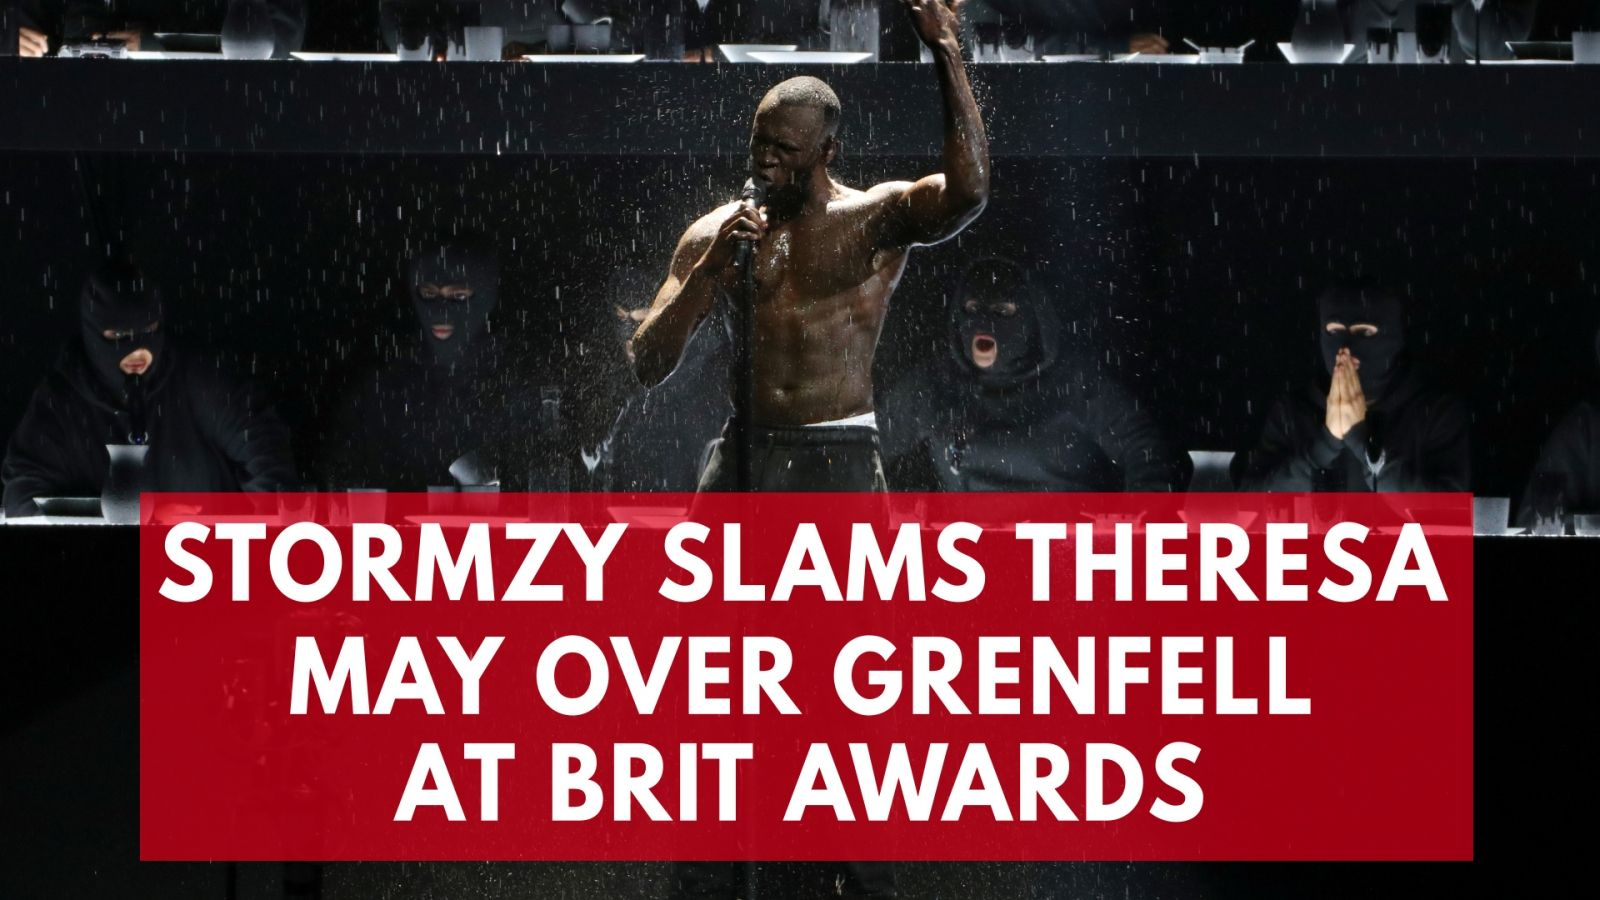 stormzy-slams-theresa-may-during-brits-rap